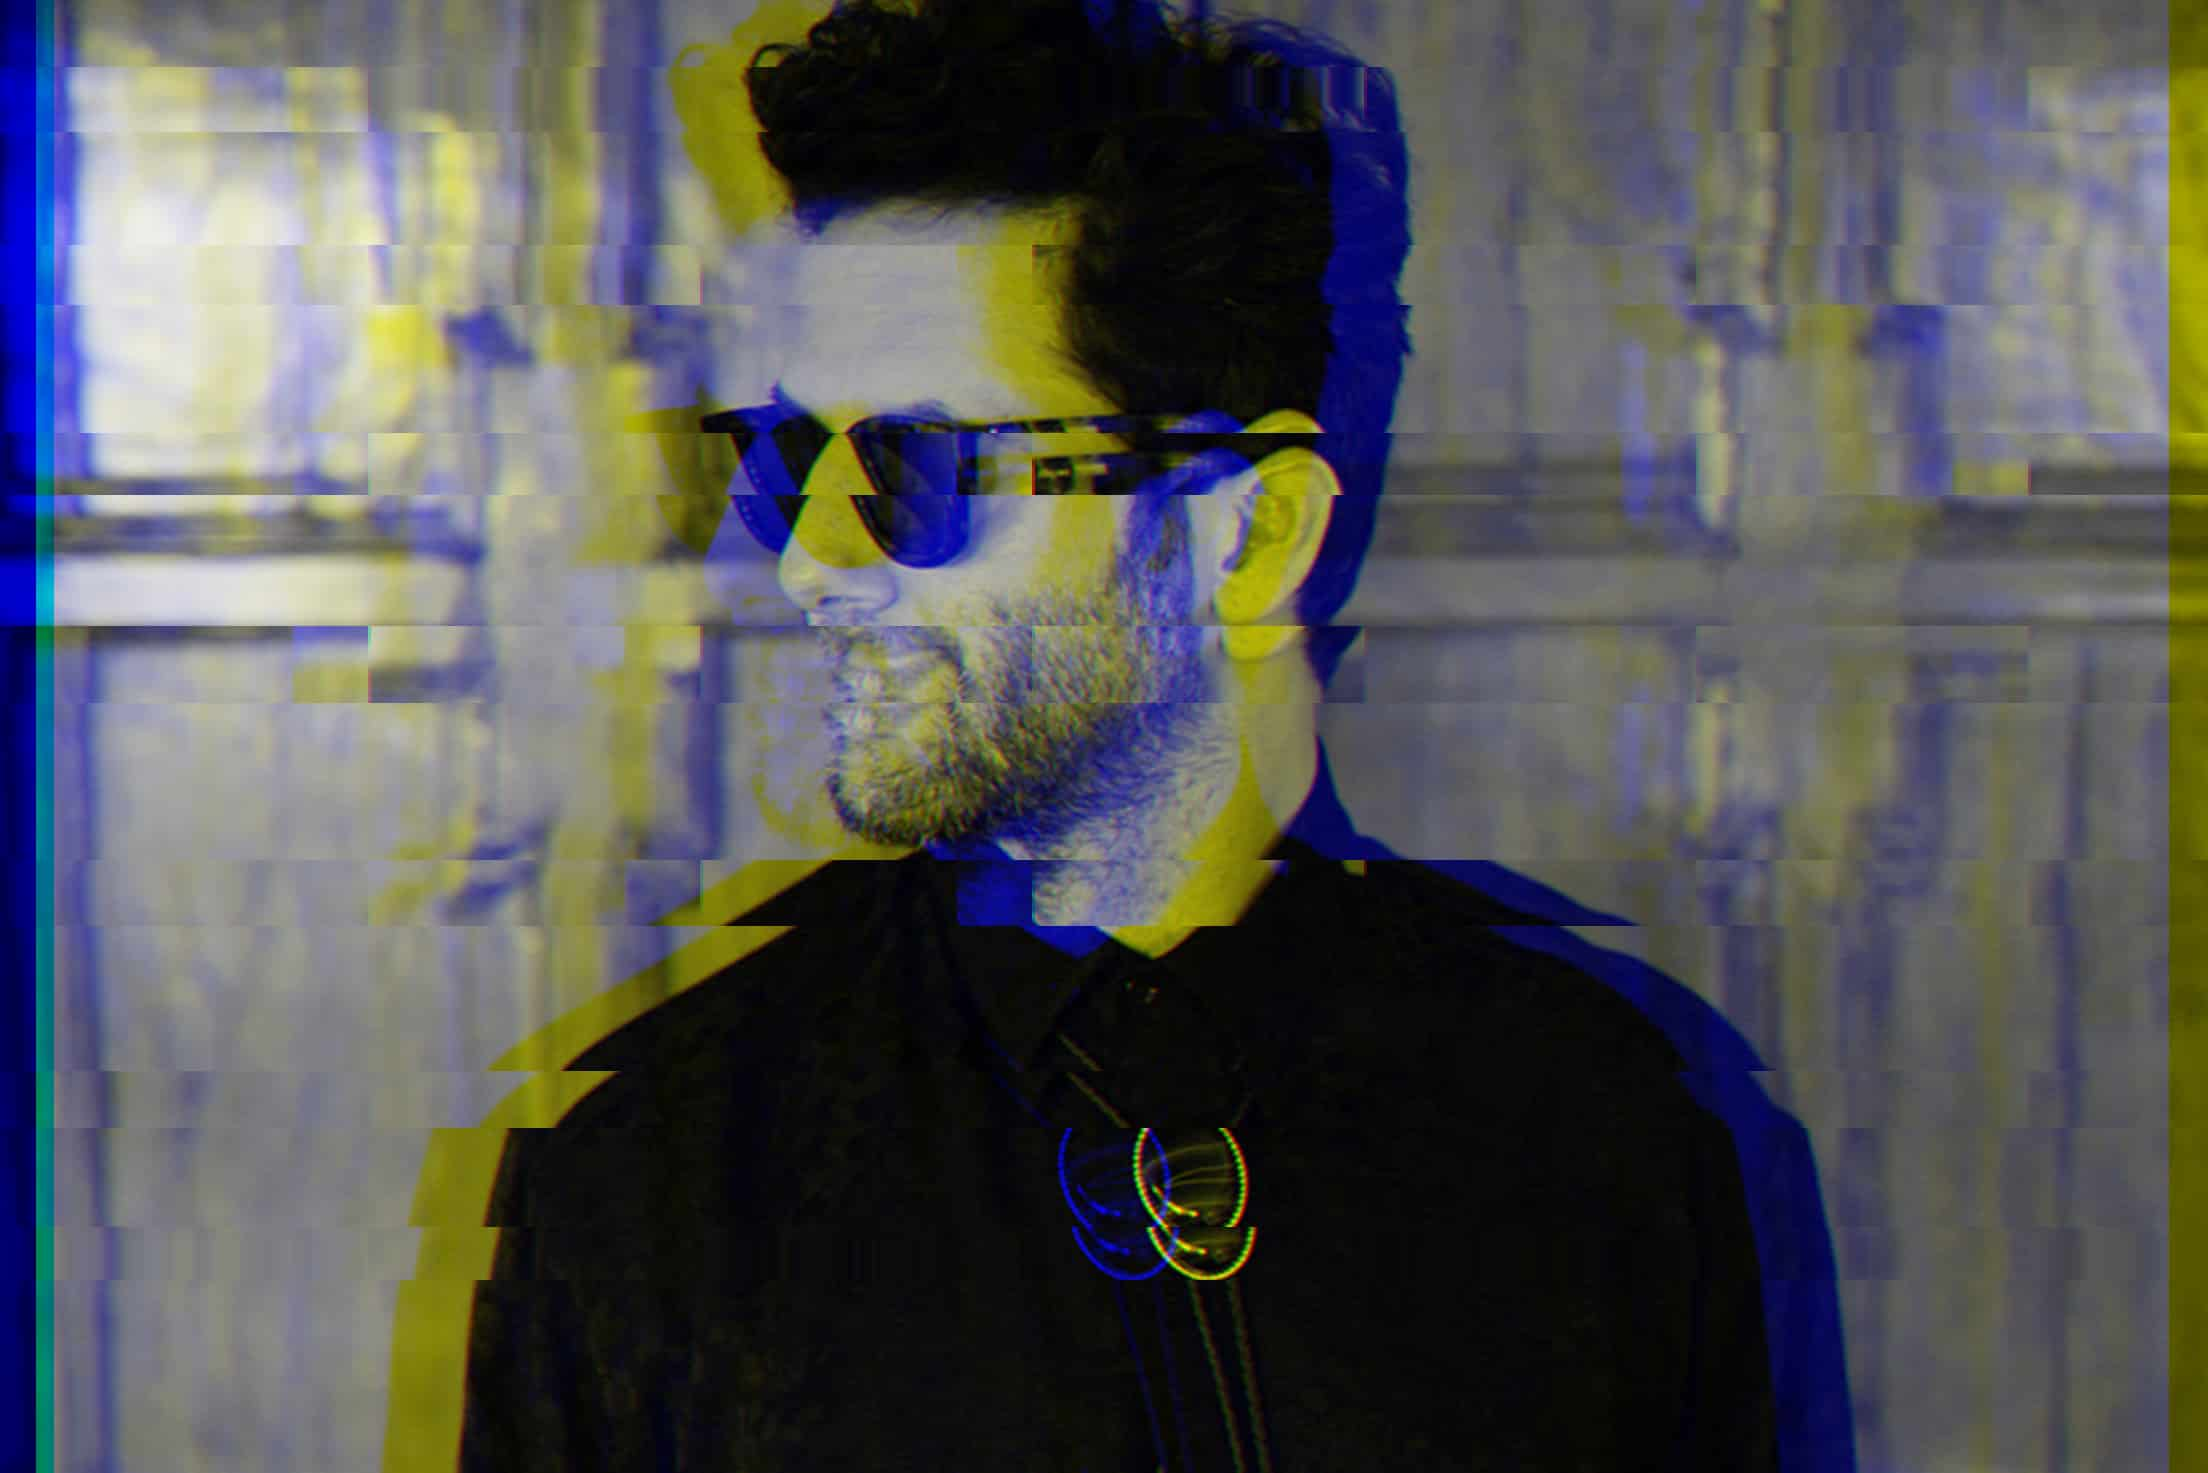 GUY GERBER – THOSE RUMORS WERE TRUE